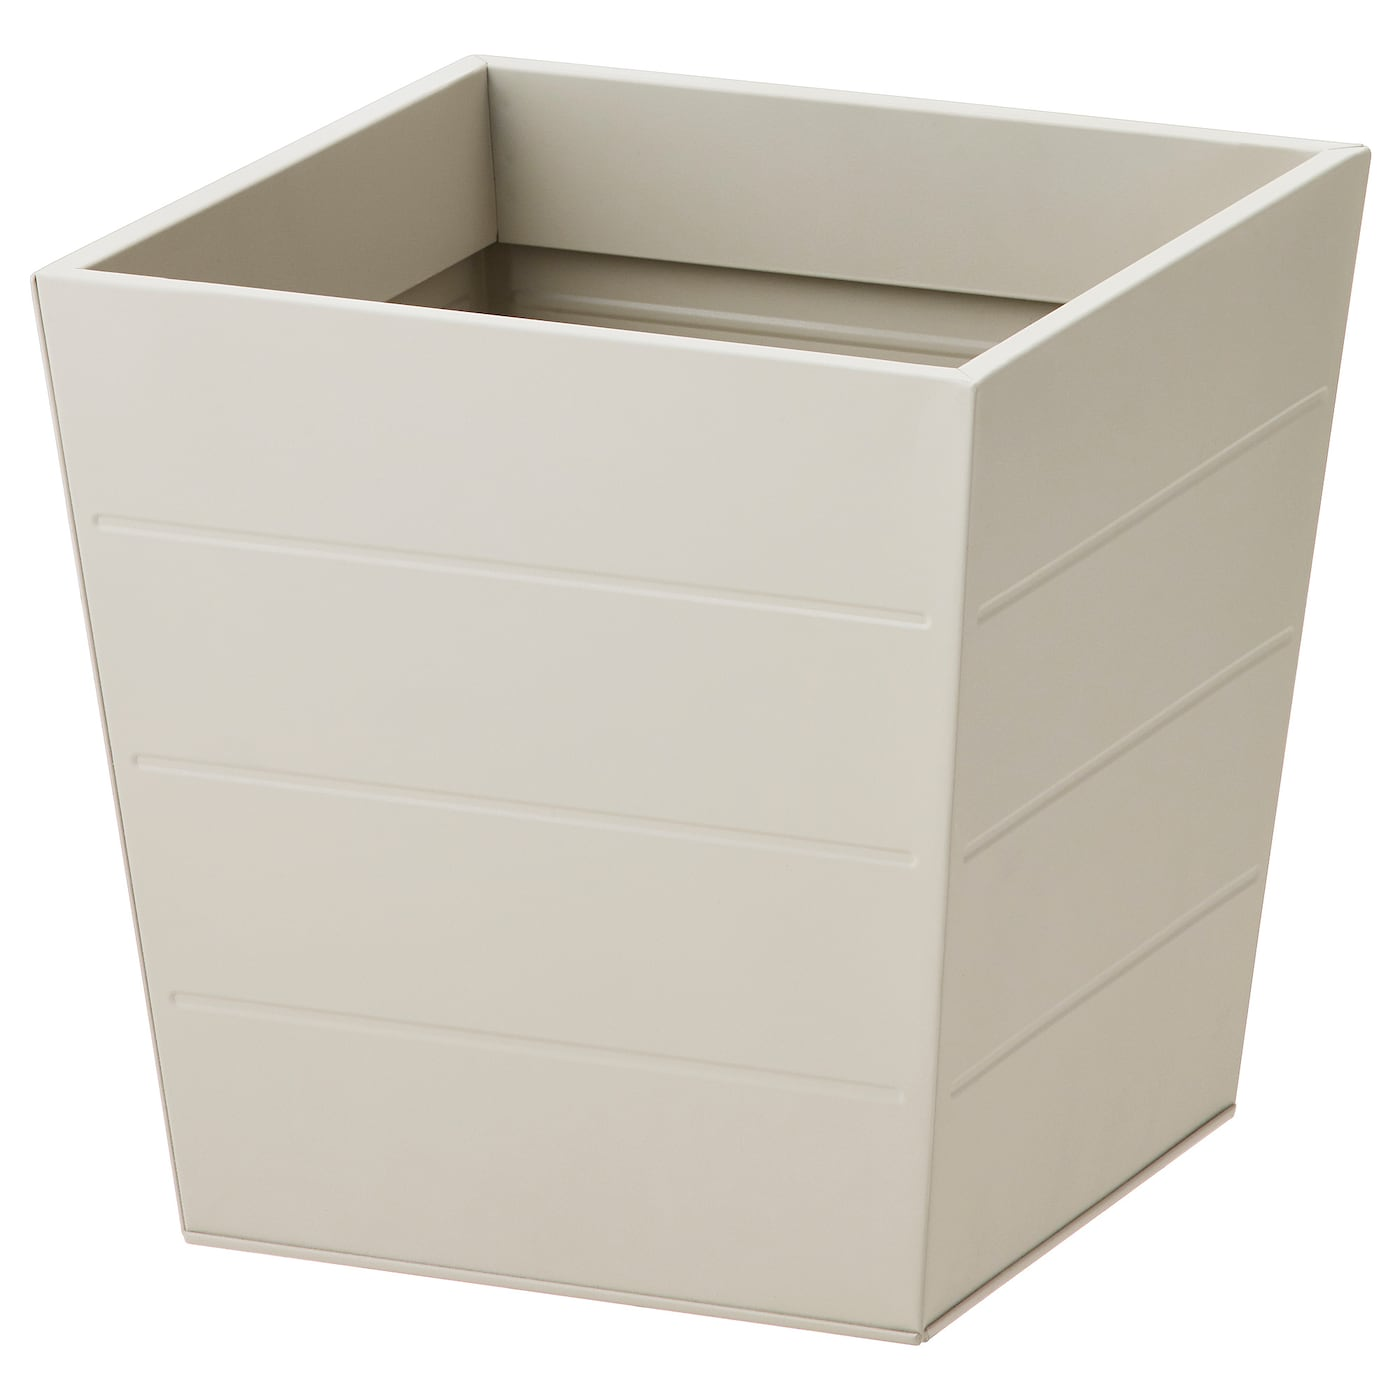 Gr set cache pot ext rieur beige 30x30 cm ikea for Cache pot exterieur